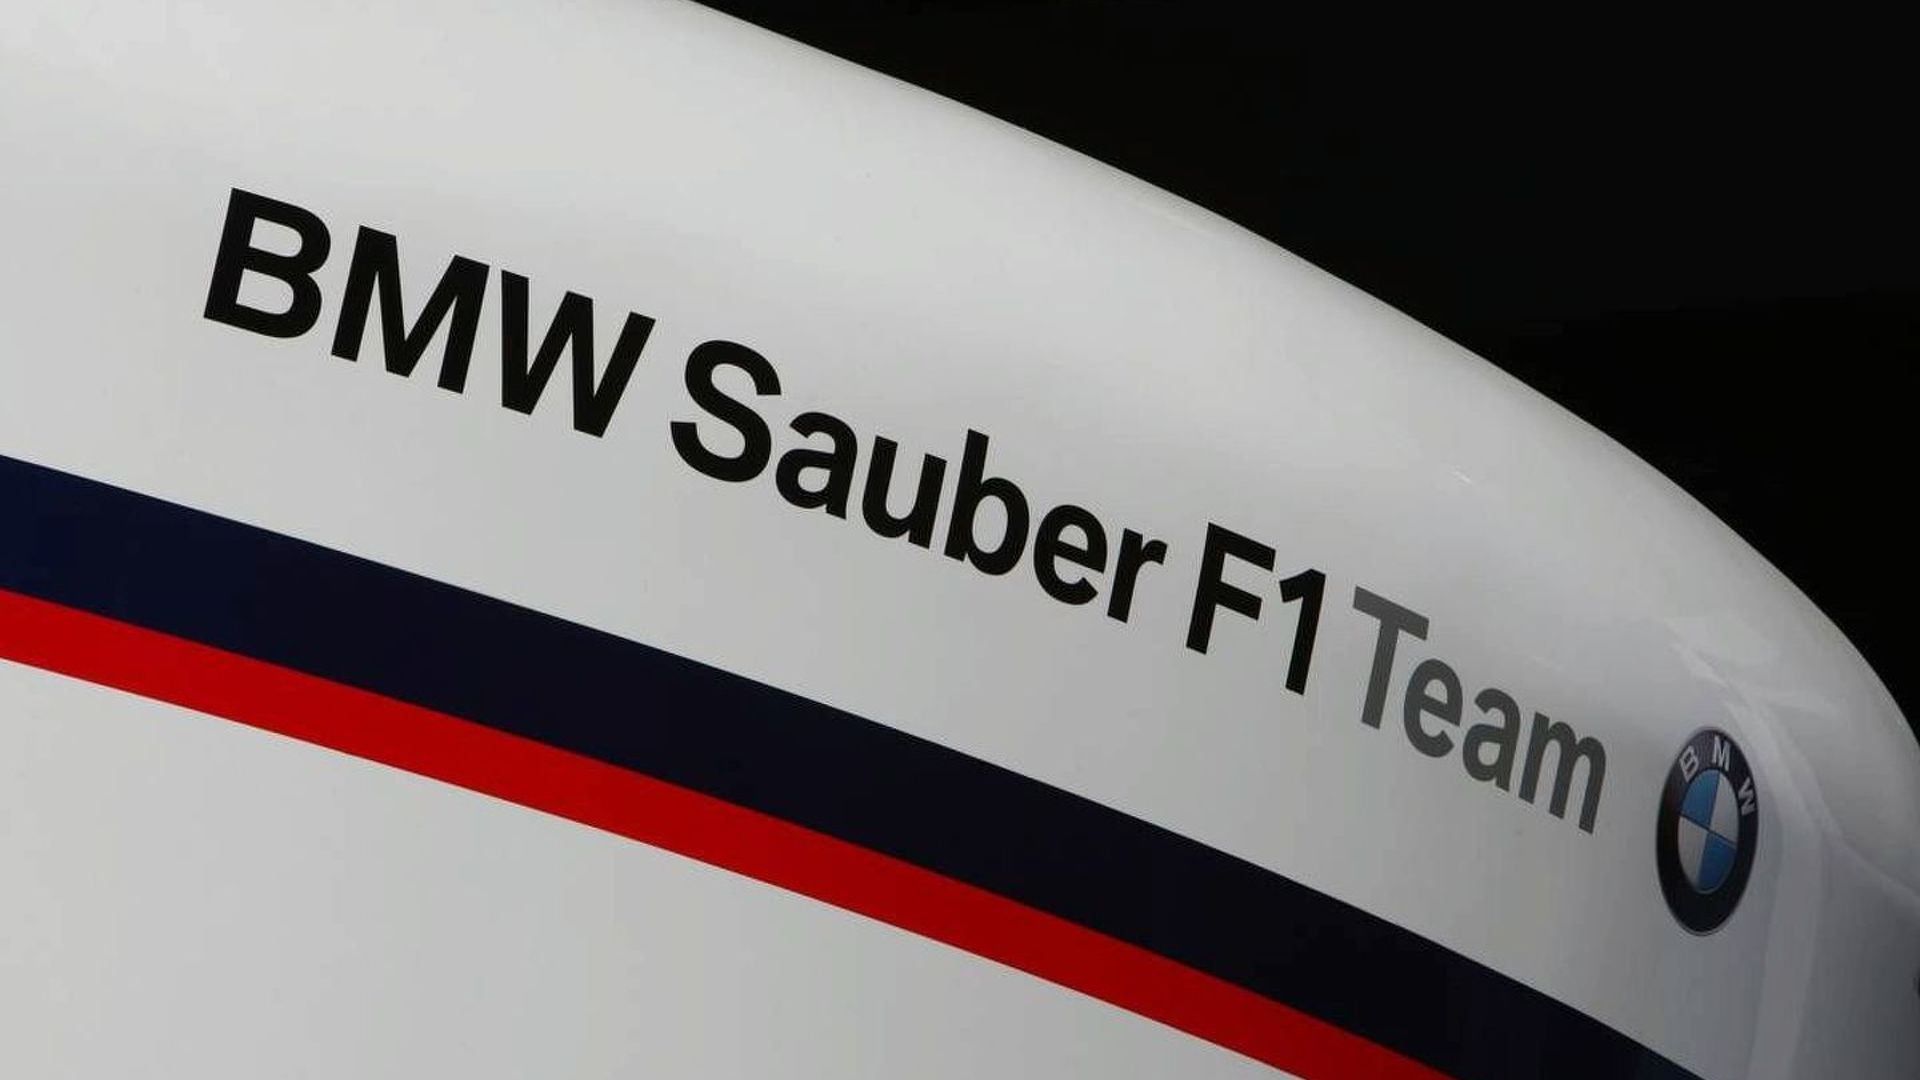 Top teams would allow BMW-Sauber 14th entry